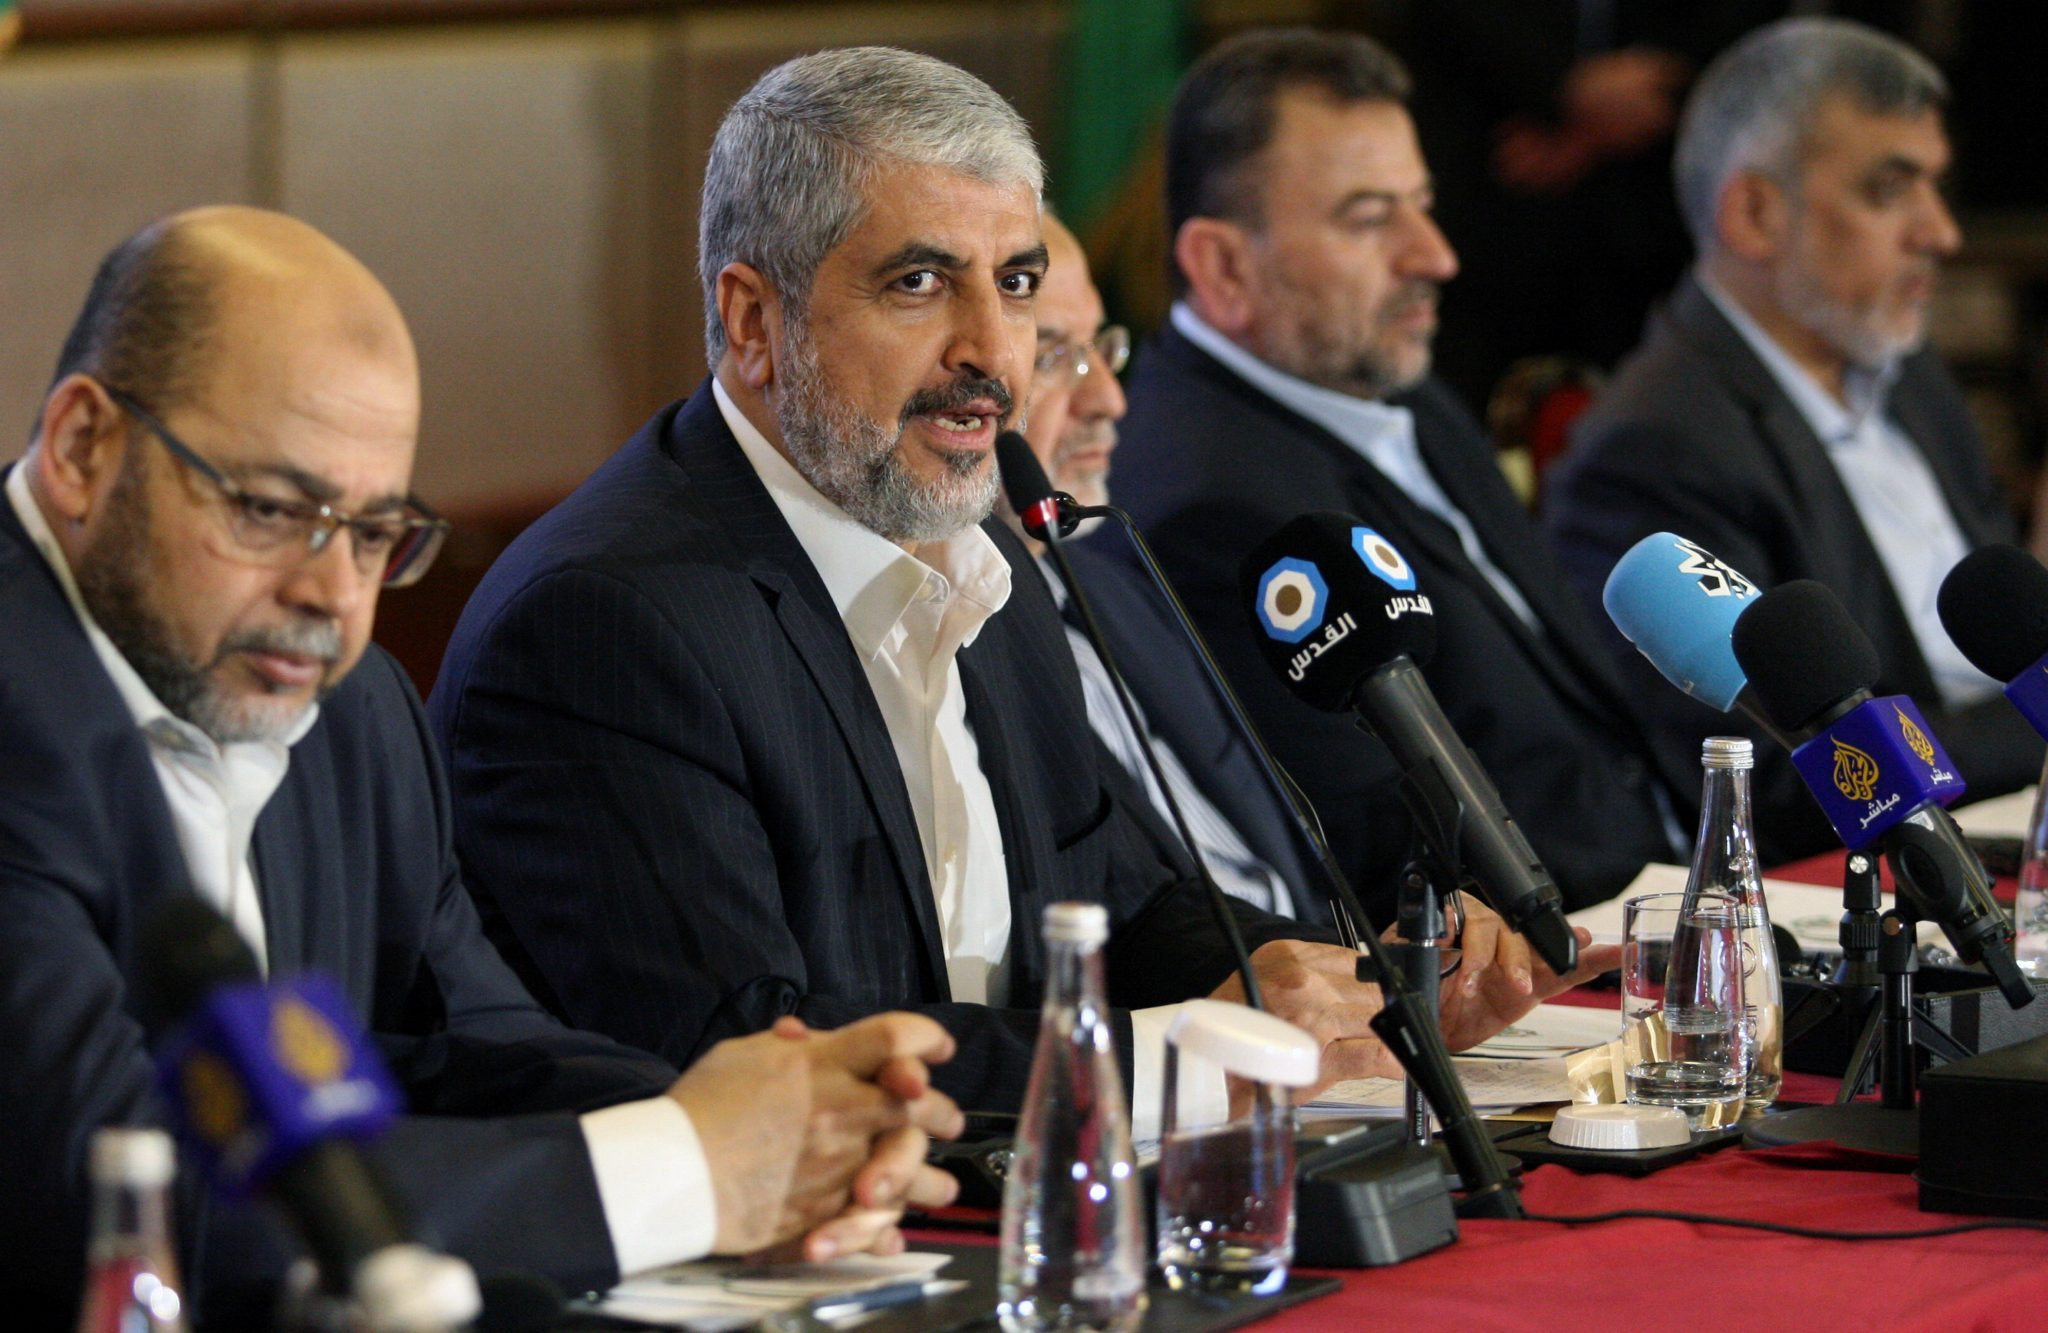 Hamas leader Khaled Meshaal gestures as he announces a new policy document in Doha | REUTERS